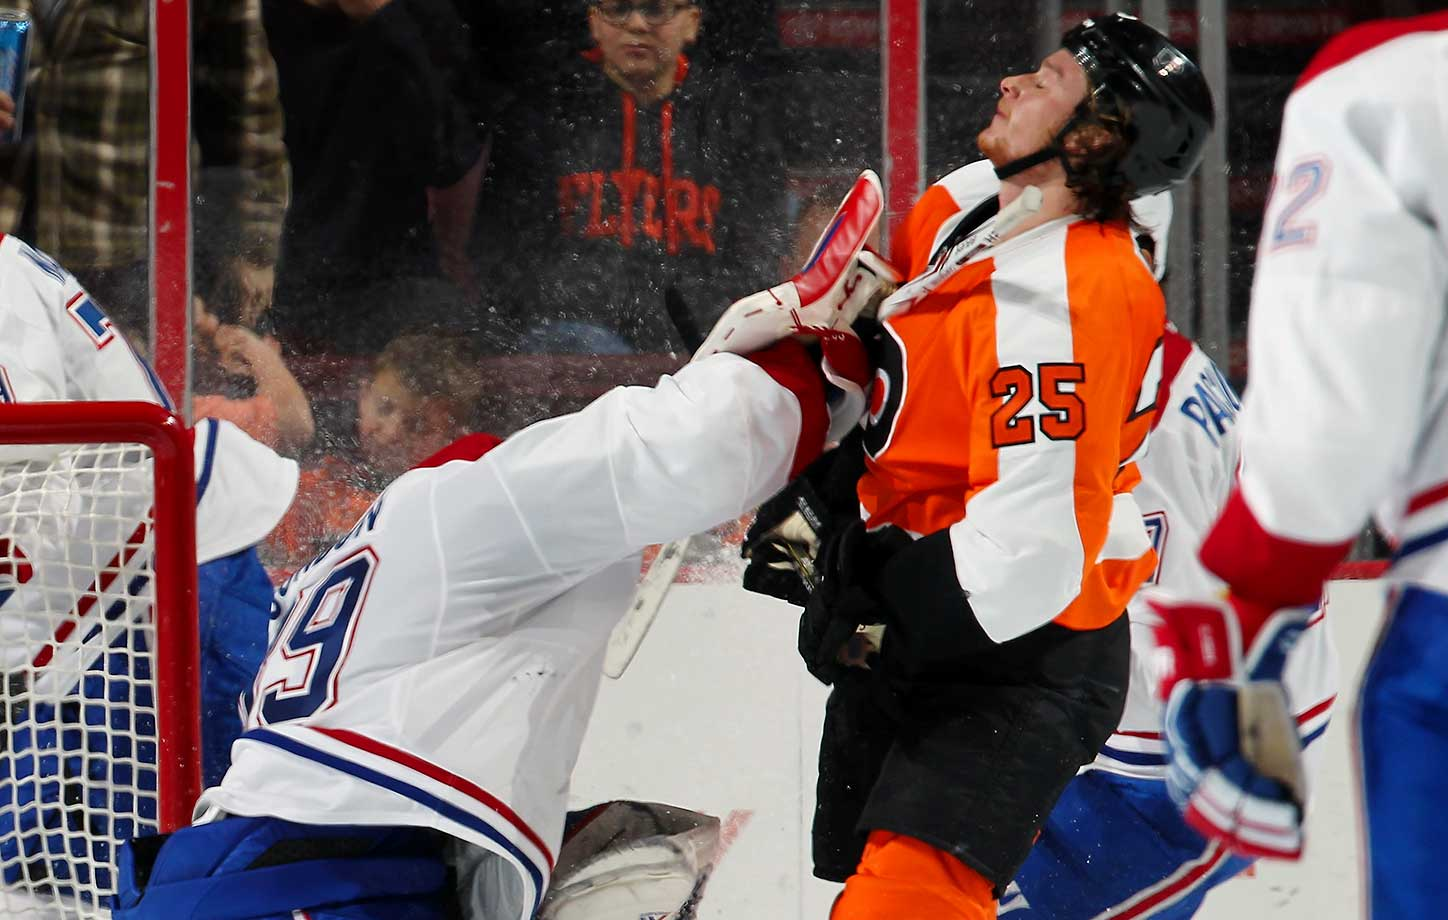 Mike Condon of the Montreal Canadiens checks Ryan White of the Philadelphia Flyers after a stoppage in play at the Wells Fargo Center in Philadelphia.